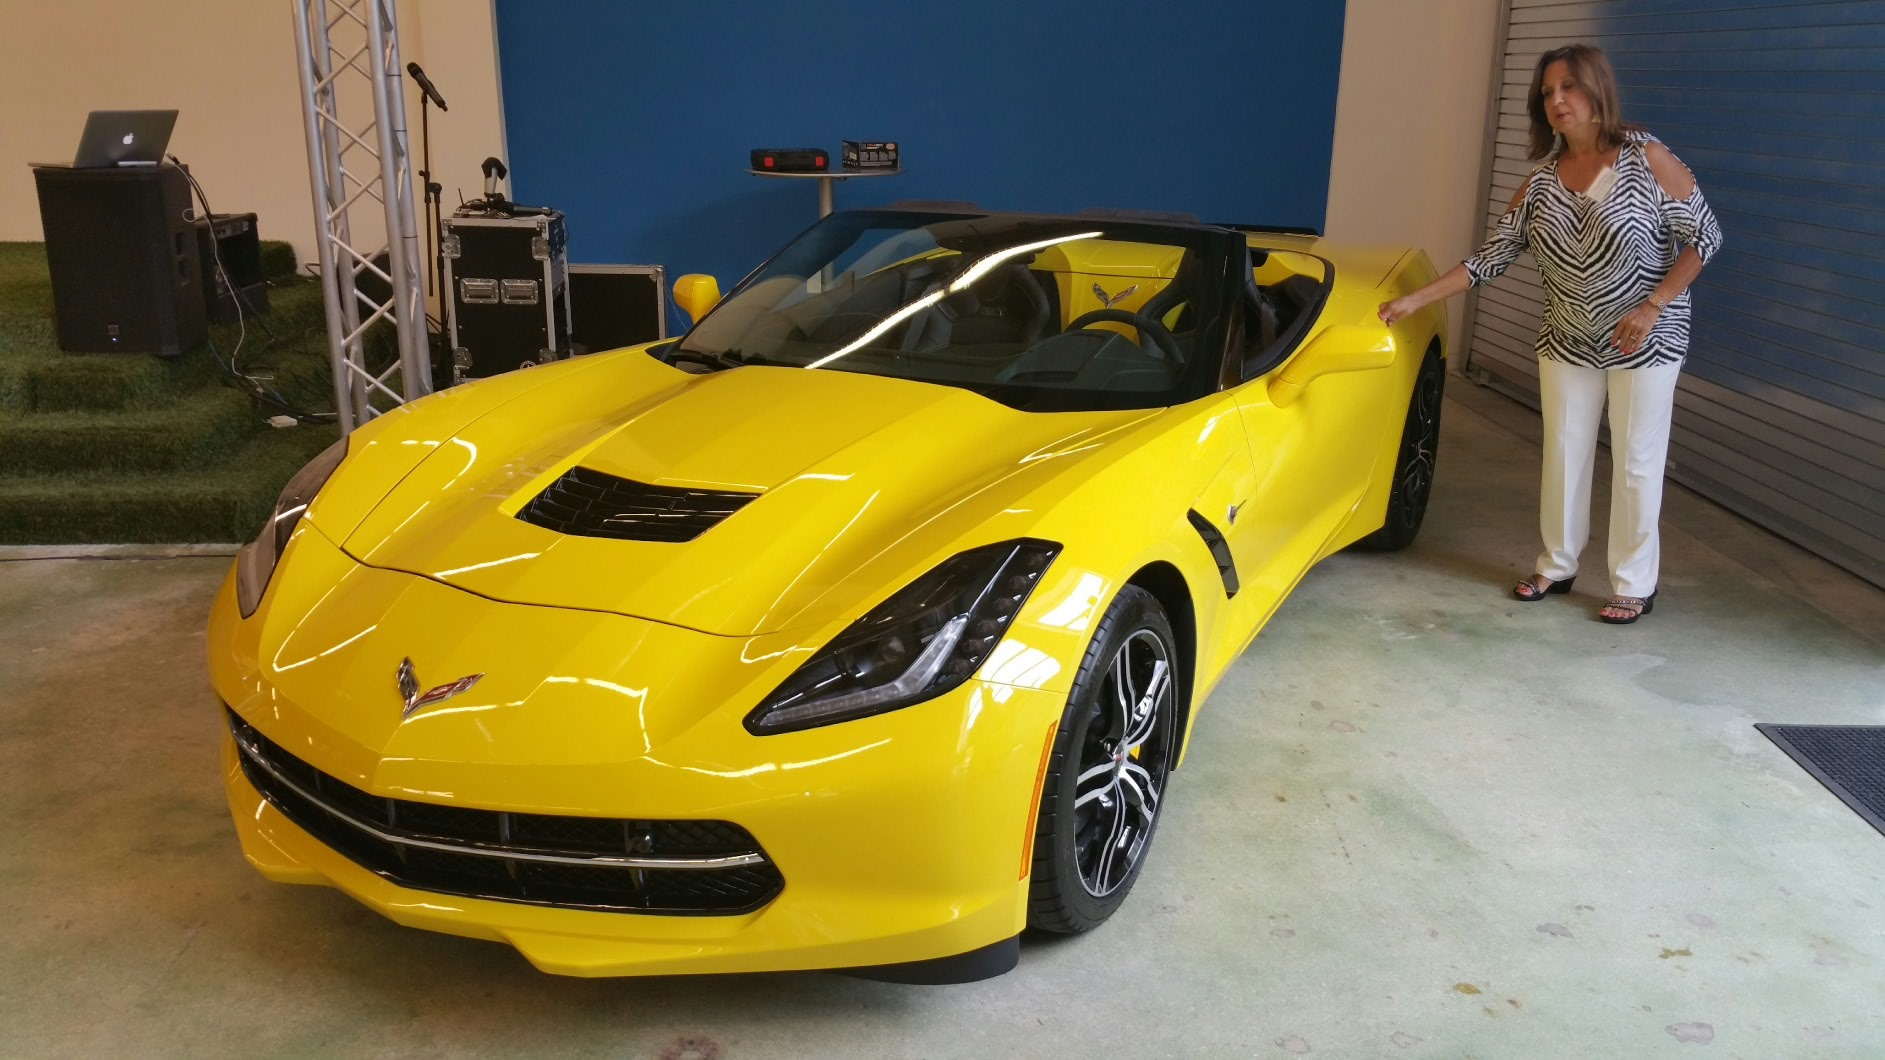 2016 CORVETTE STINGRAY OFFERS NEW DESIGN PACKAGES, CONNECTIVITY AND TECHNOLOGY ENHANCEMENTS